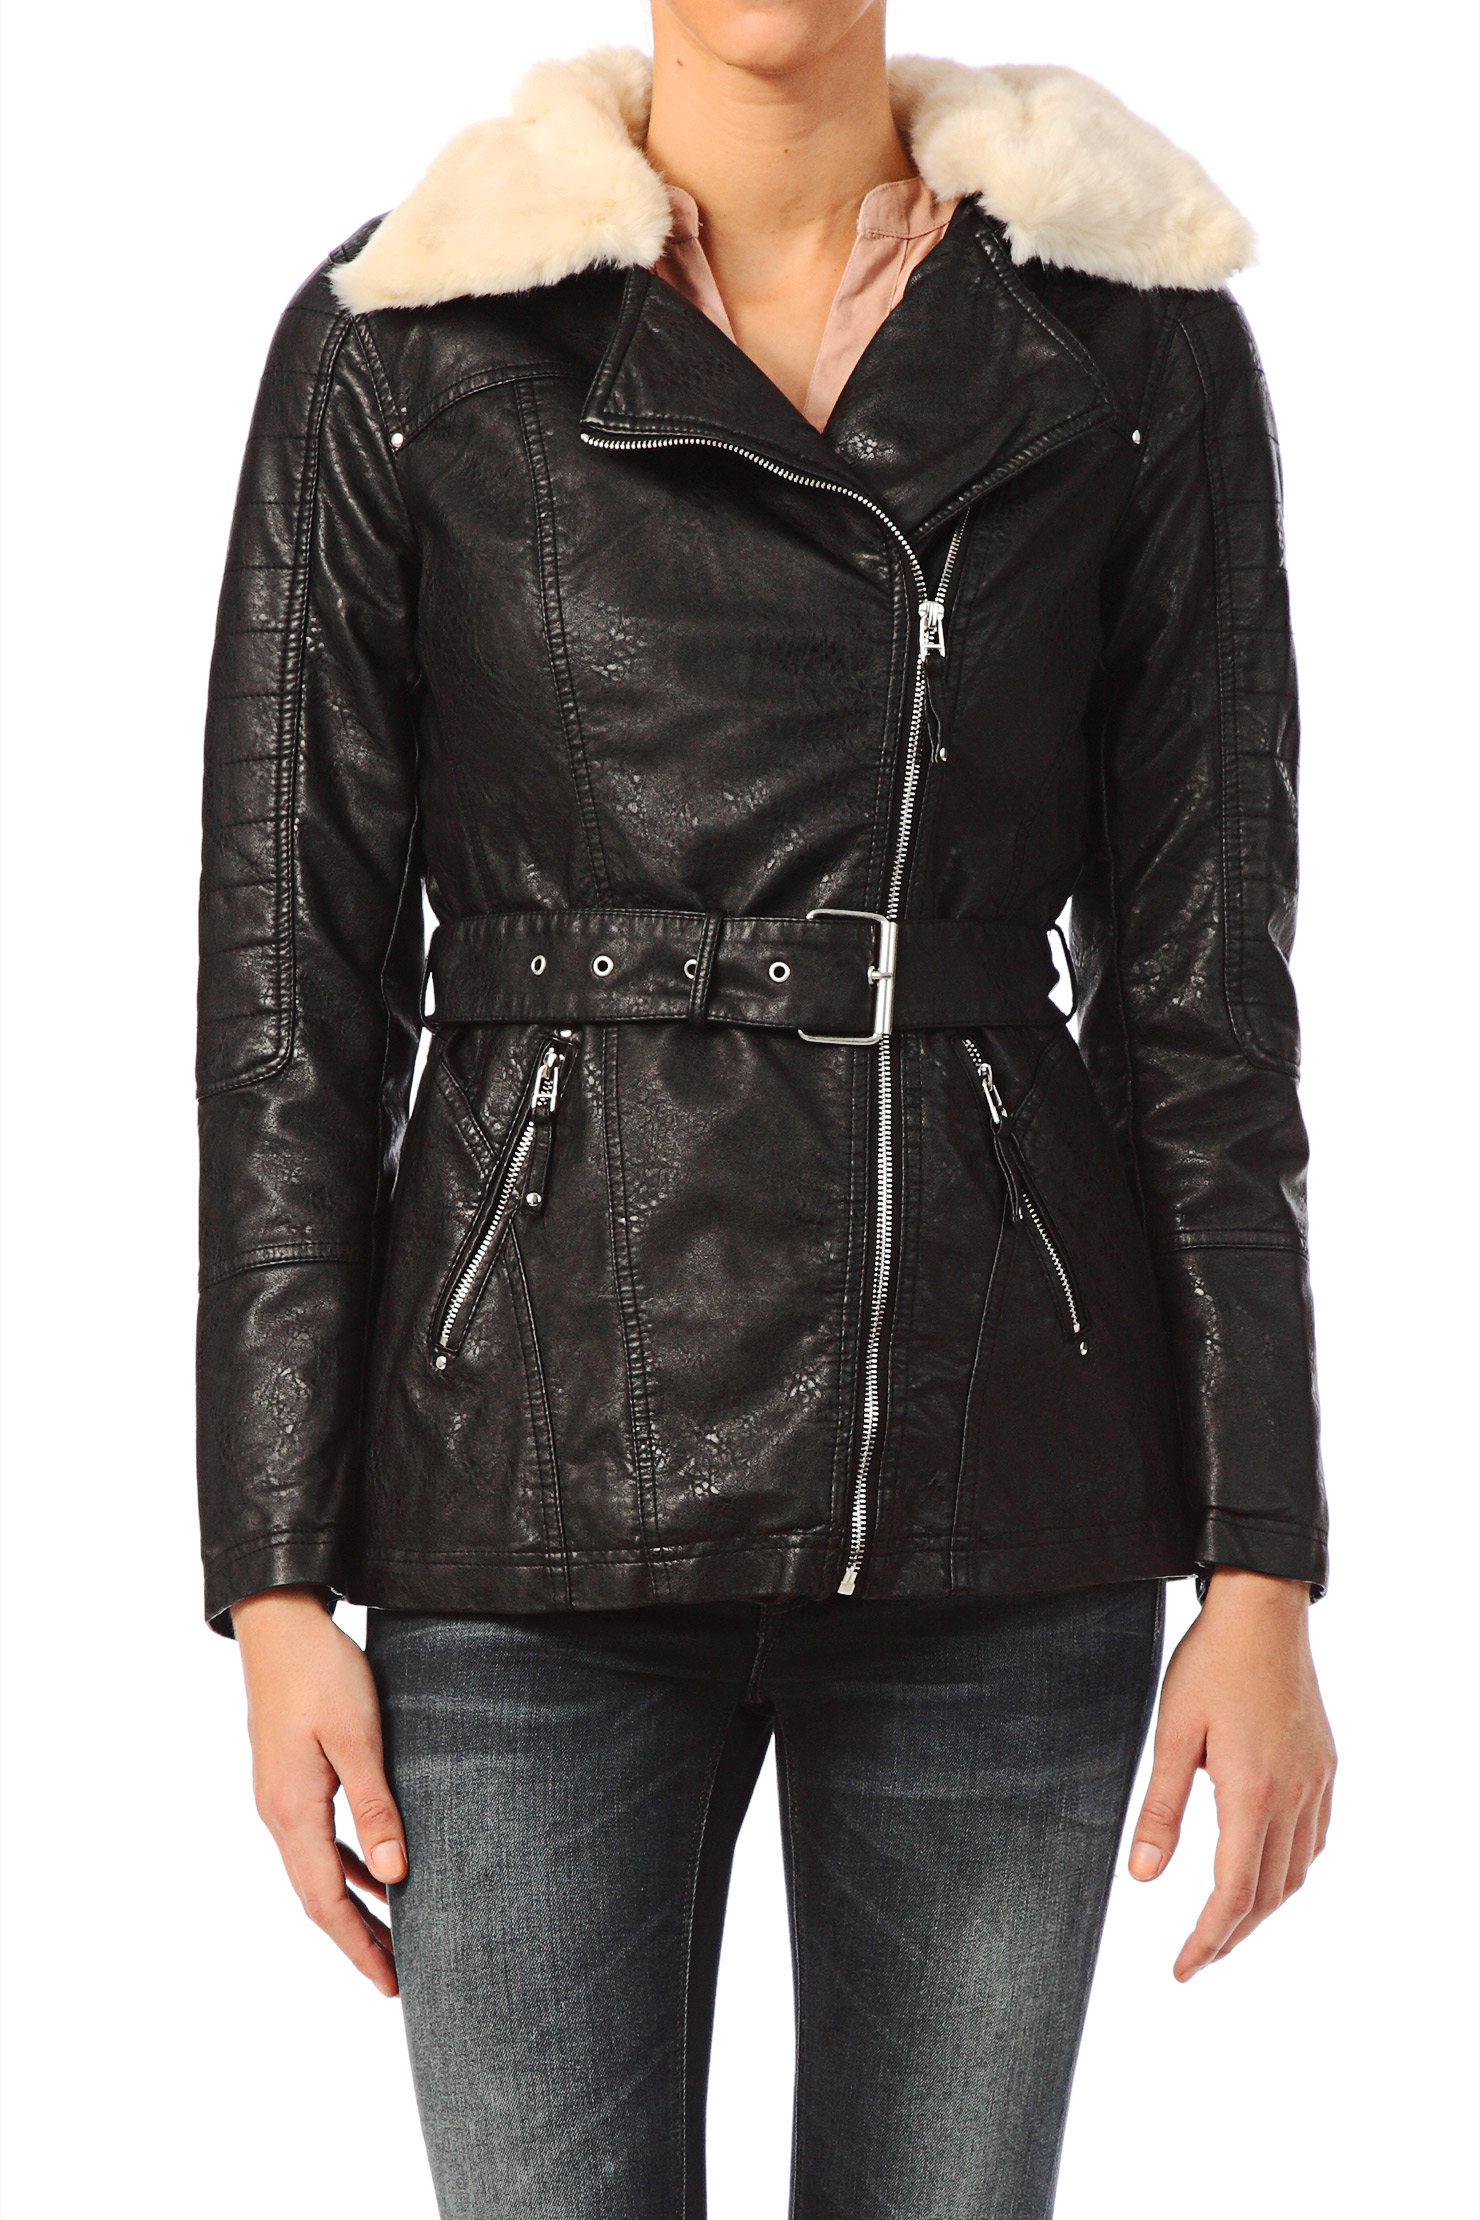 vero moda jacket in black lyst. Black Bedroom Furniture Sets. Home Design Ideas